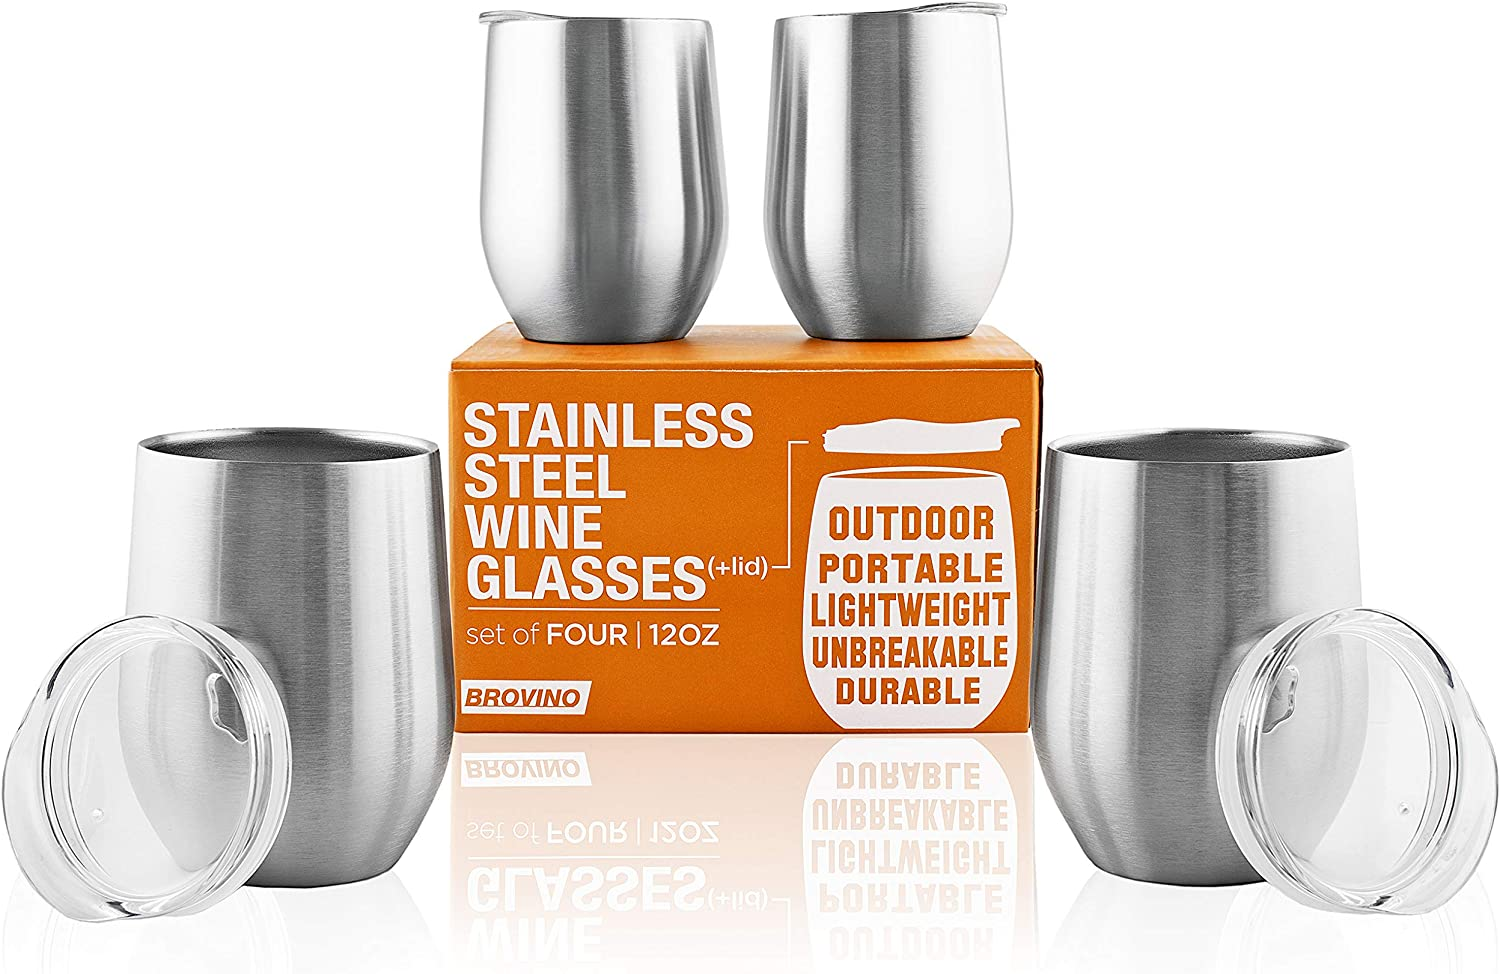 Stainless Steel Wine Glasses with Lid (Set of 4) - 12 oz Double Walled Insulated Outdoor Wine Tumblers - 100% Unbreakable & Stemless - Drinkware Set for: Wine, Coffee, Water